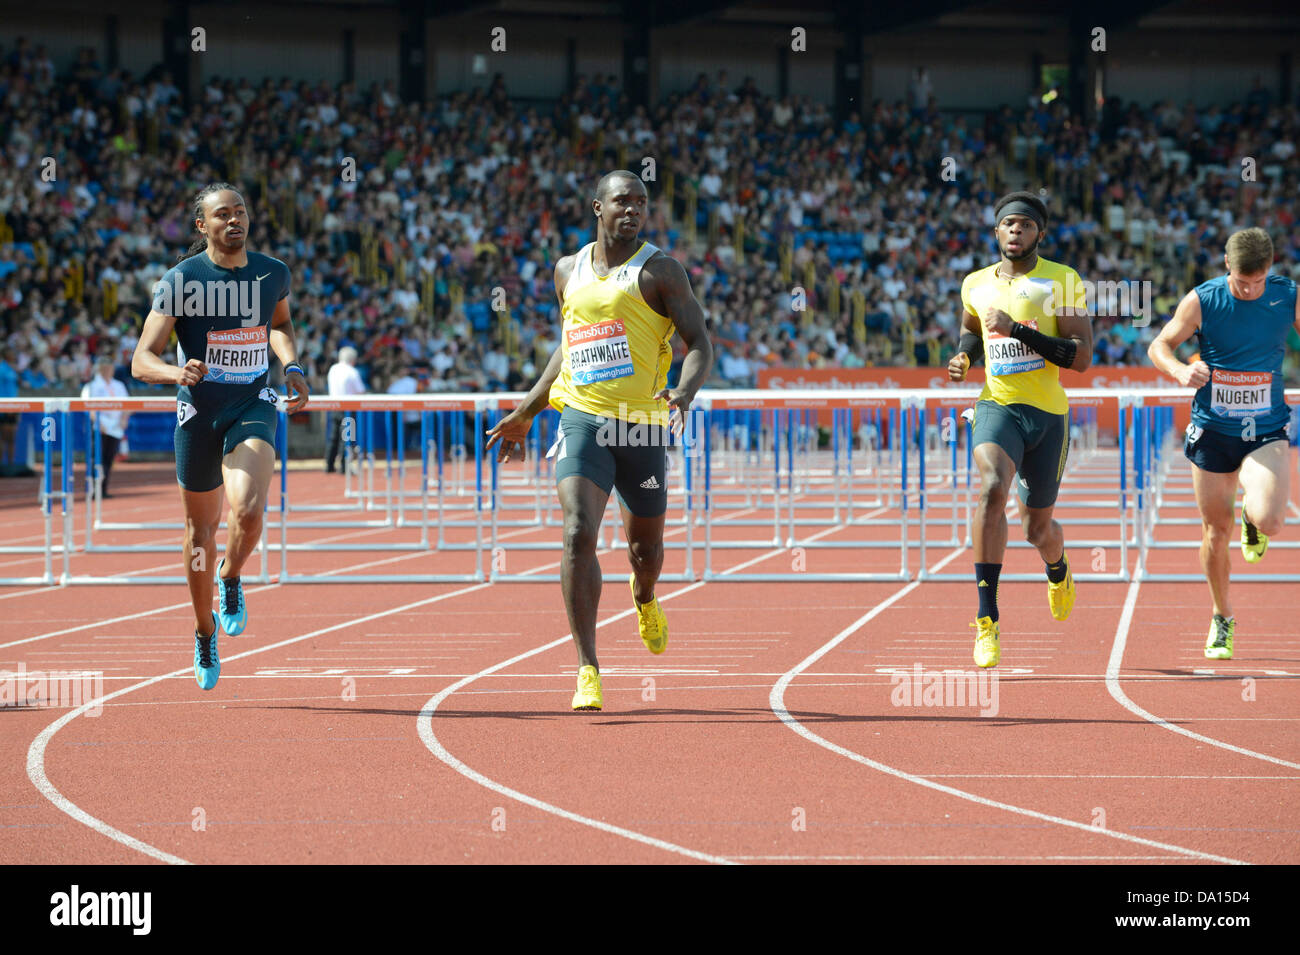 Birmingham, UK. 30th June 2013. Ryan Brathwaite (second from left) of Barbados races to 1st place in the men's - Stock Image